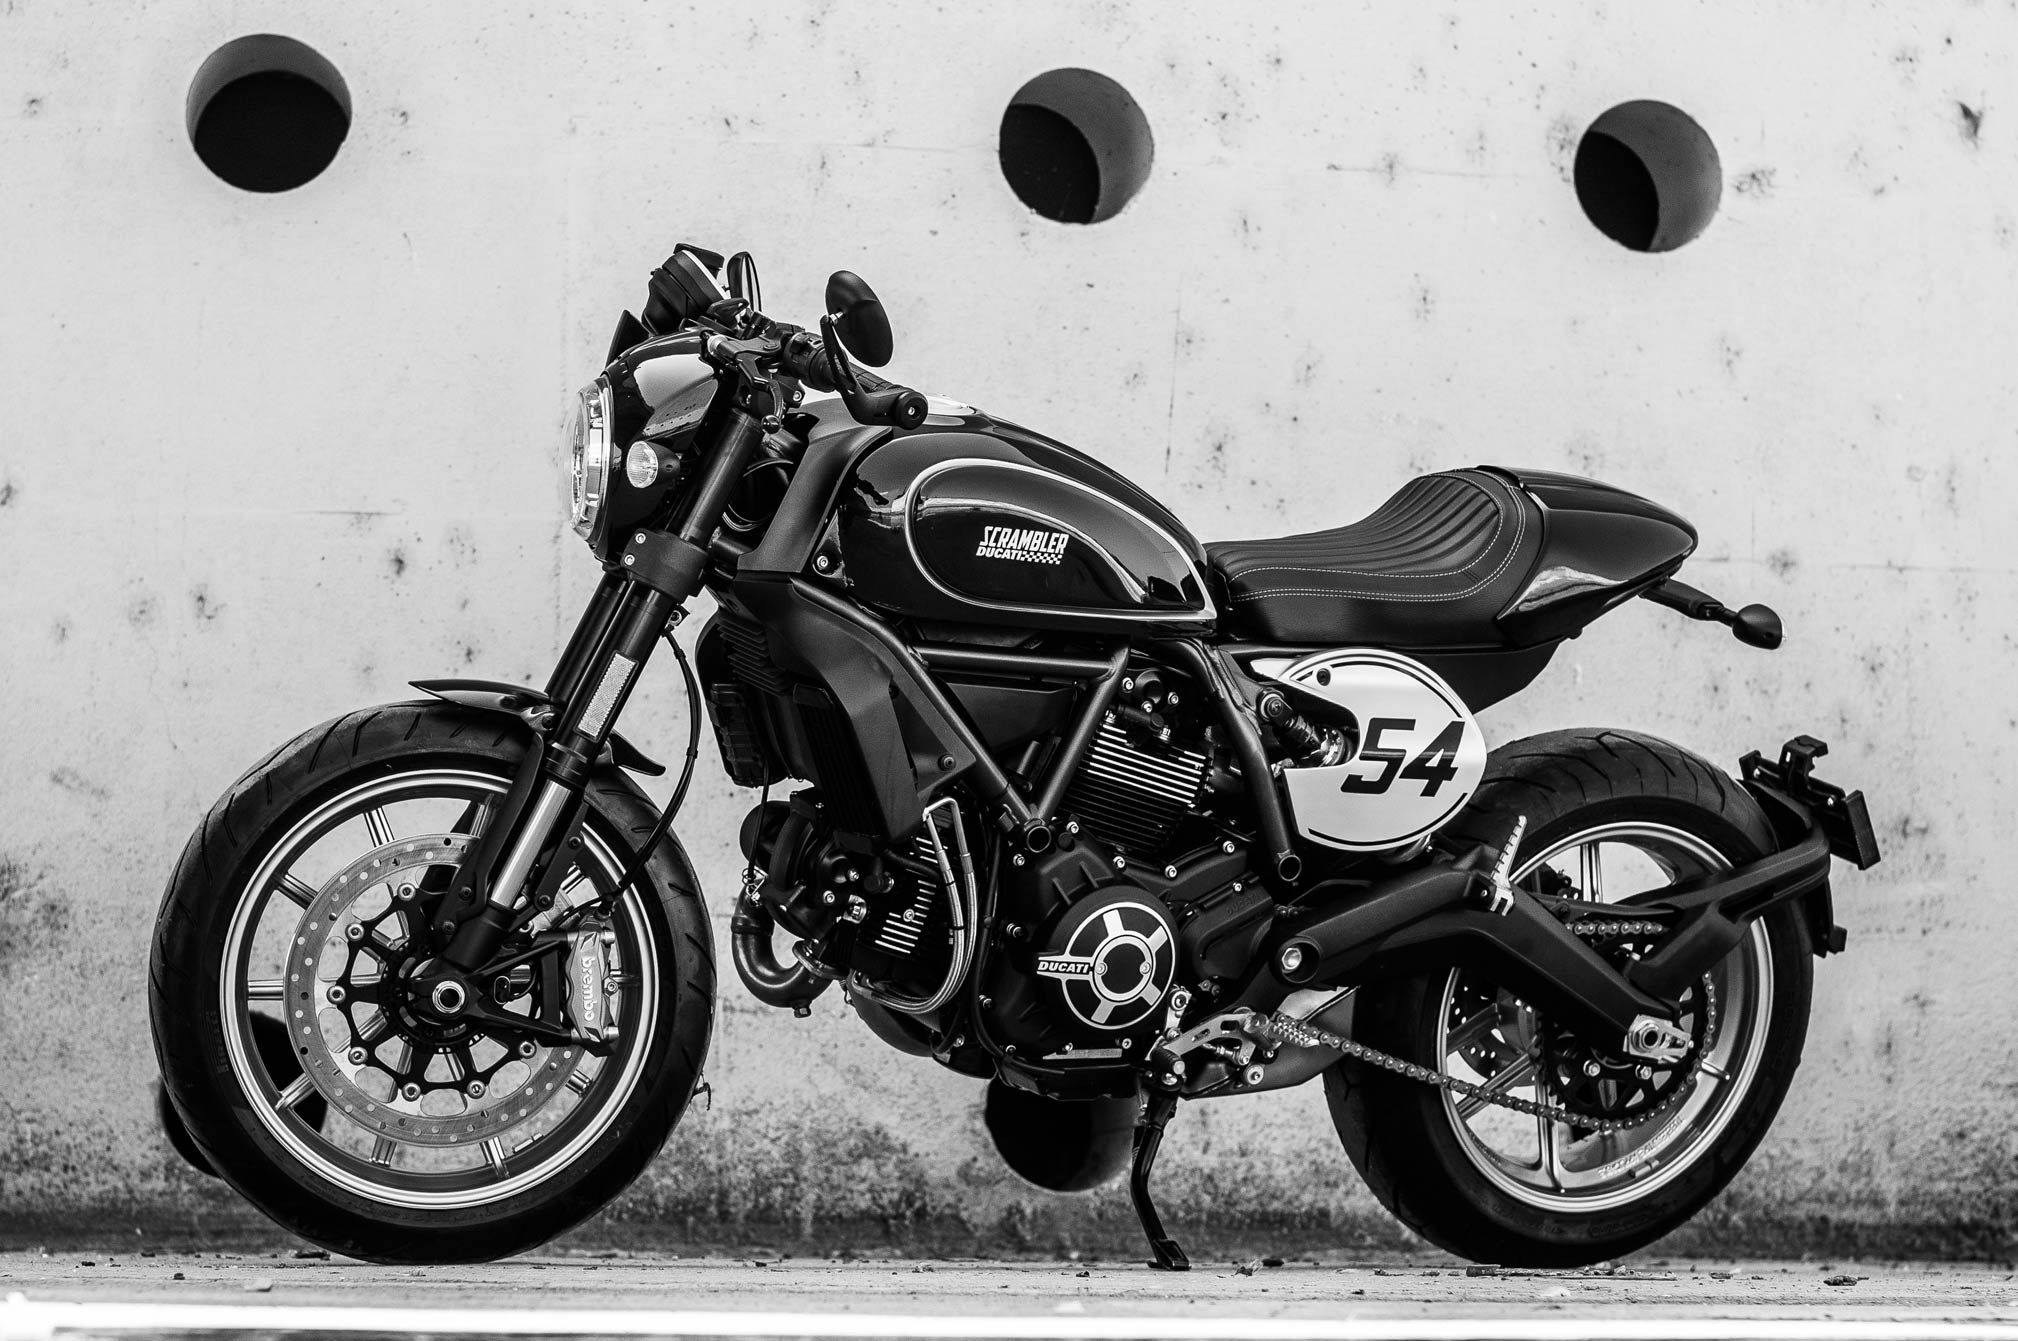 2018 Ducati Scrambler Cafe Racer Review FROM CAFE TO CAFE 2018